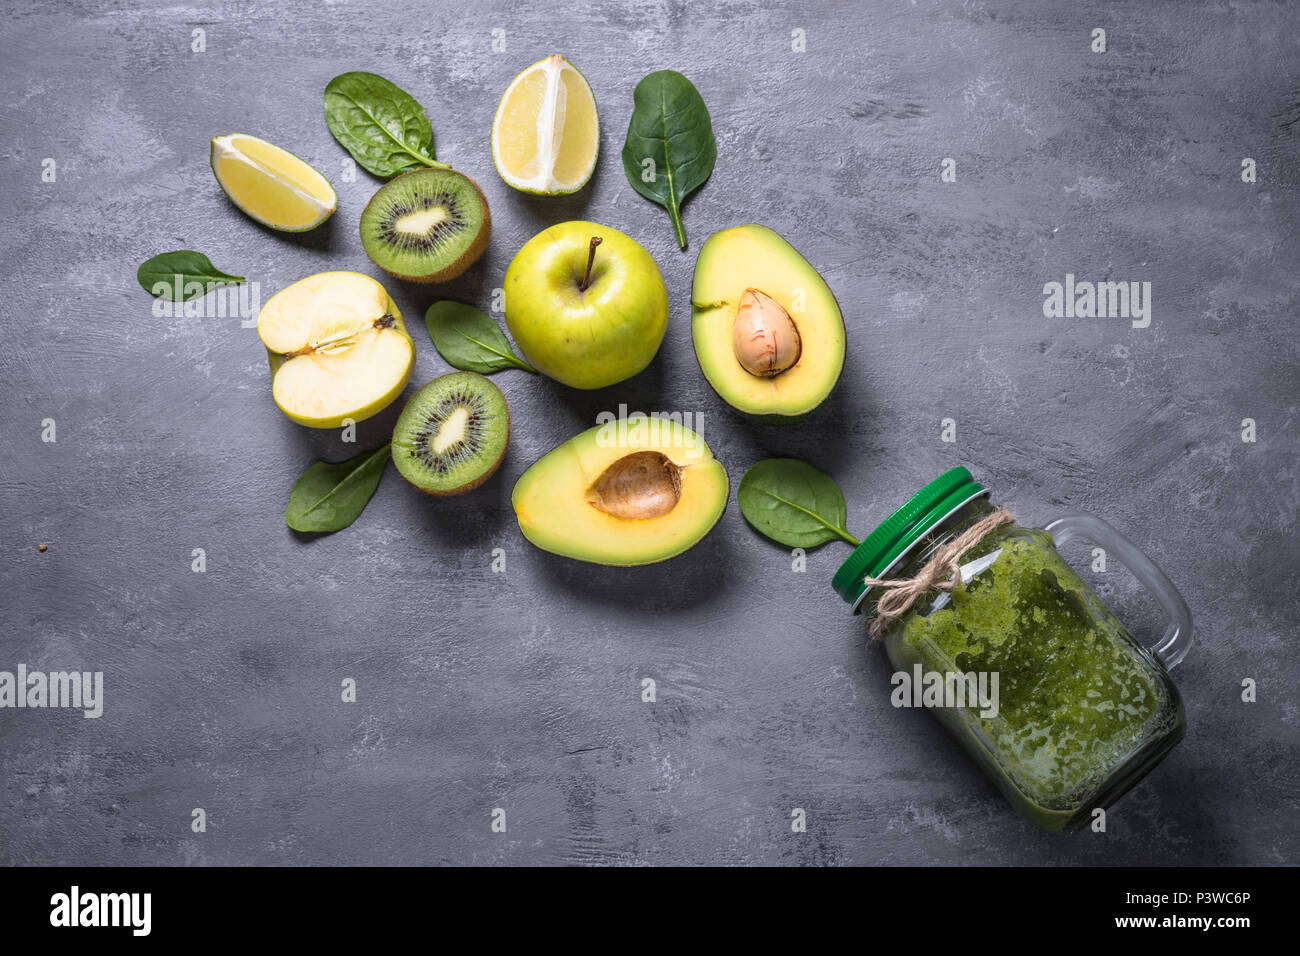 Green smoothie in mason jar and ingredients. Superfoods, detox, diet, healthy food. Lime, apple, spinach avocado and lime - Stock Image